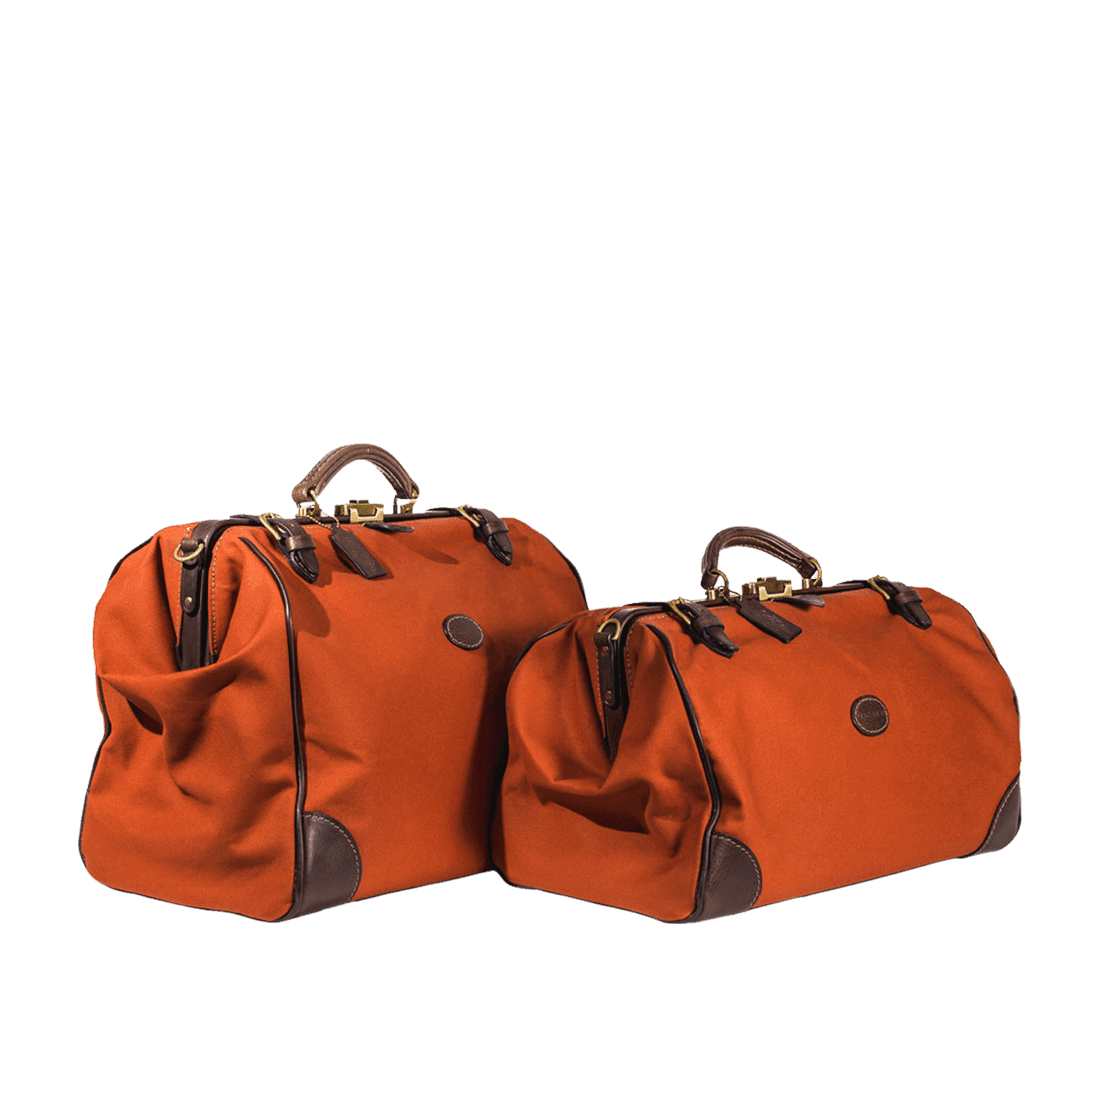 The Gladstone leather & canvas weekend & overnight russet